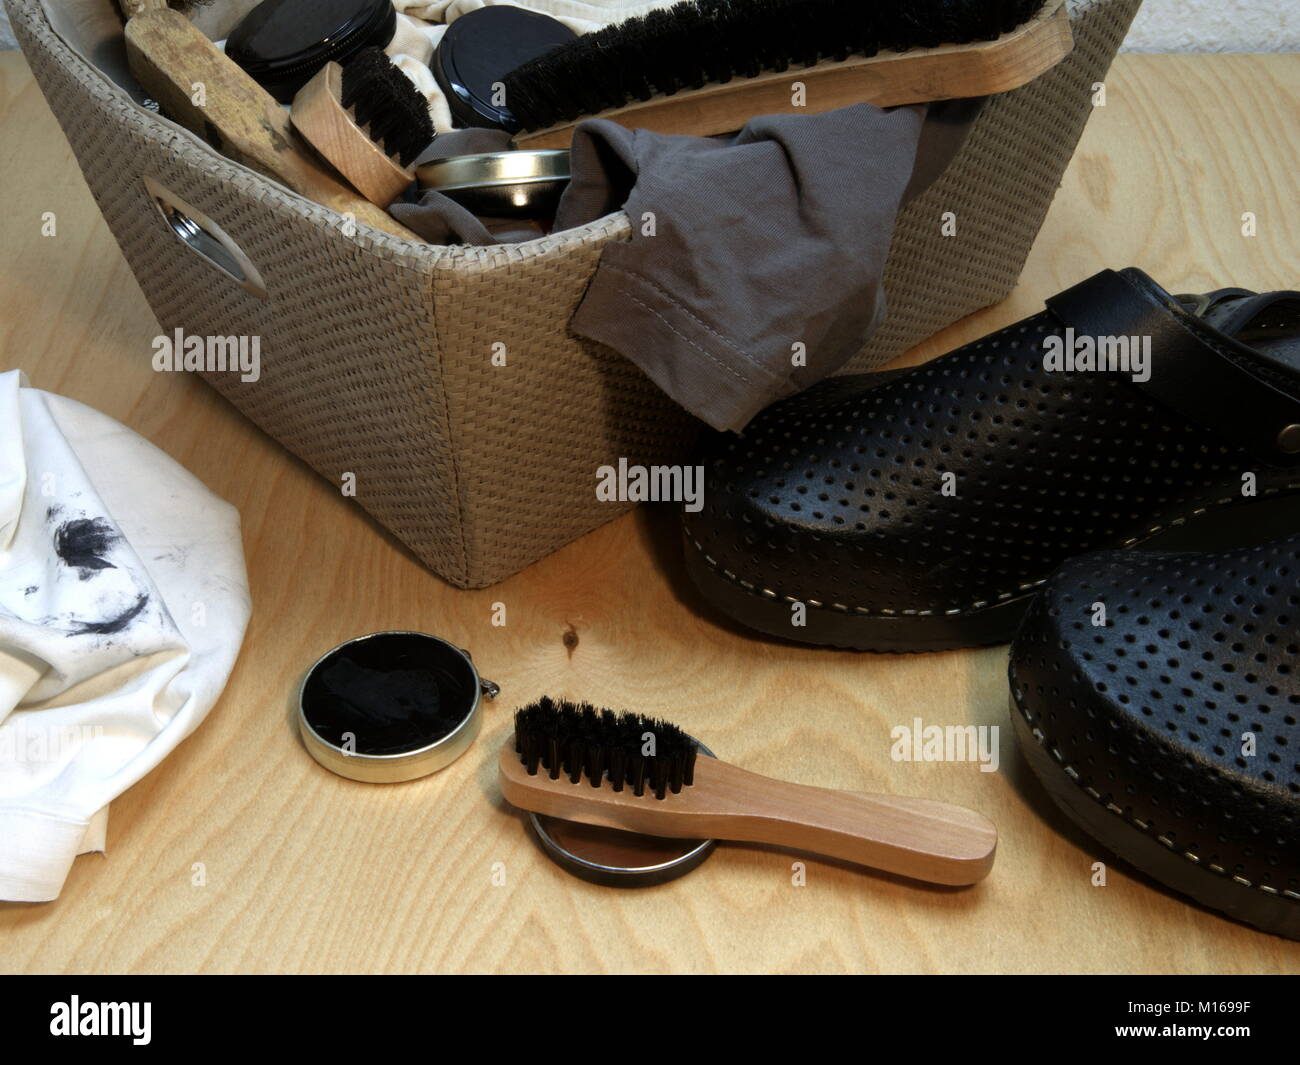 Cleaning utensils for shoes - Stock Image